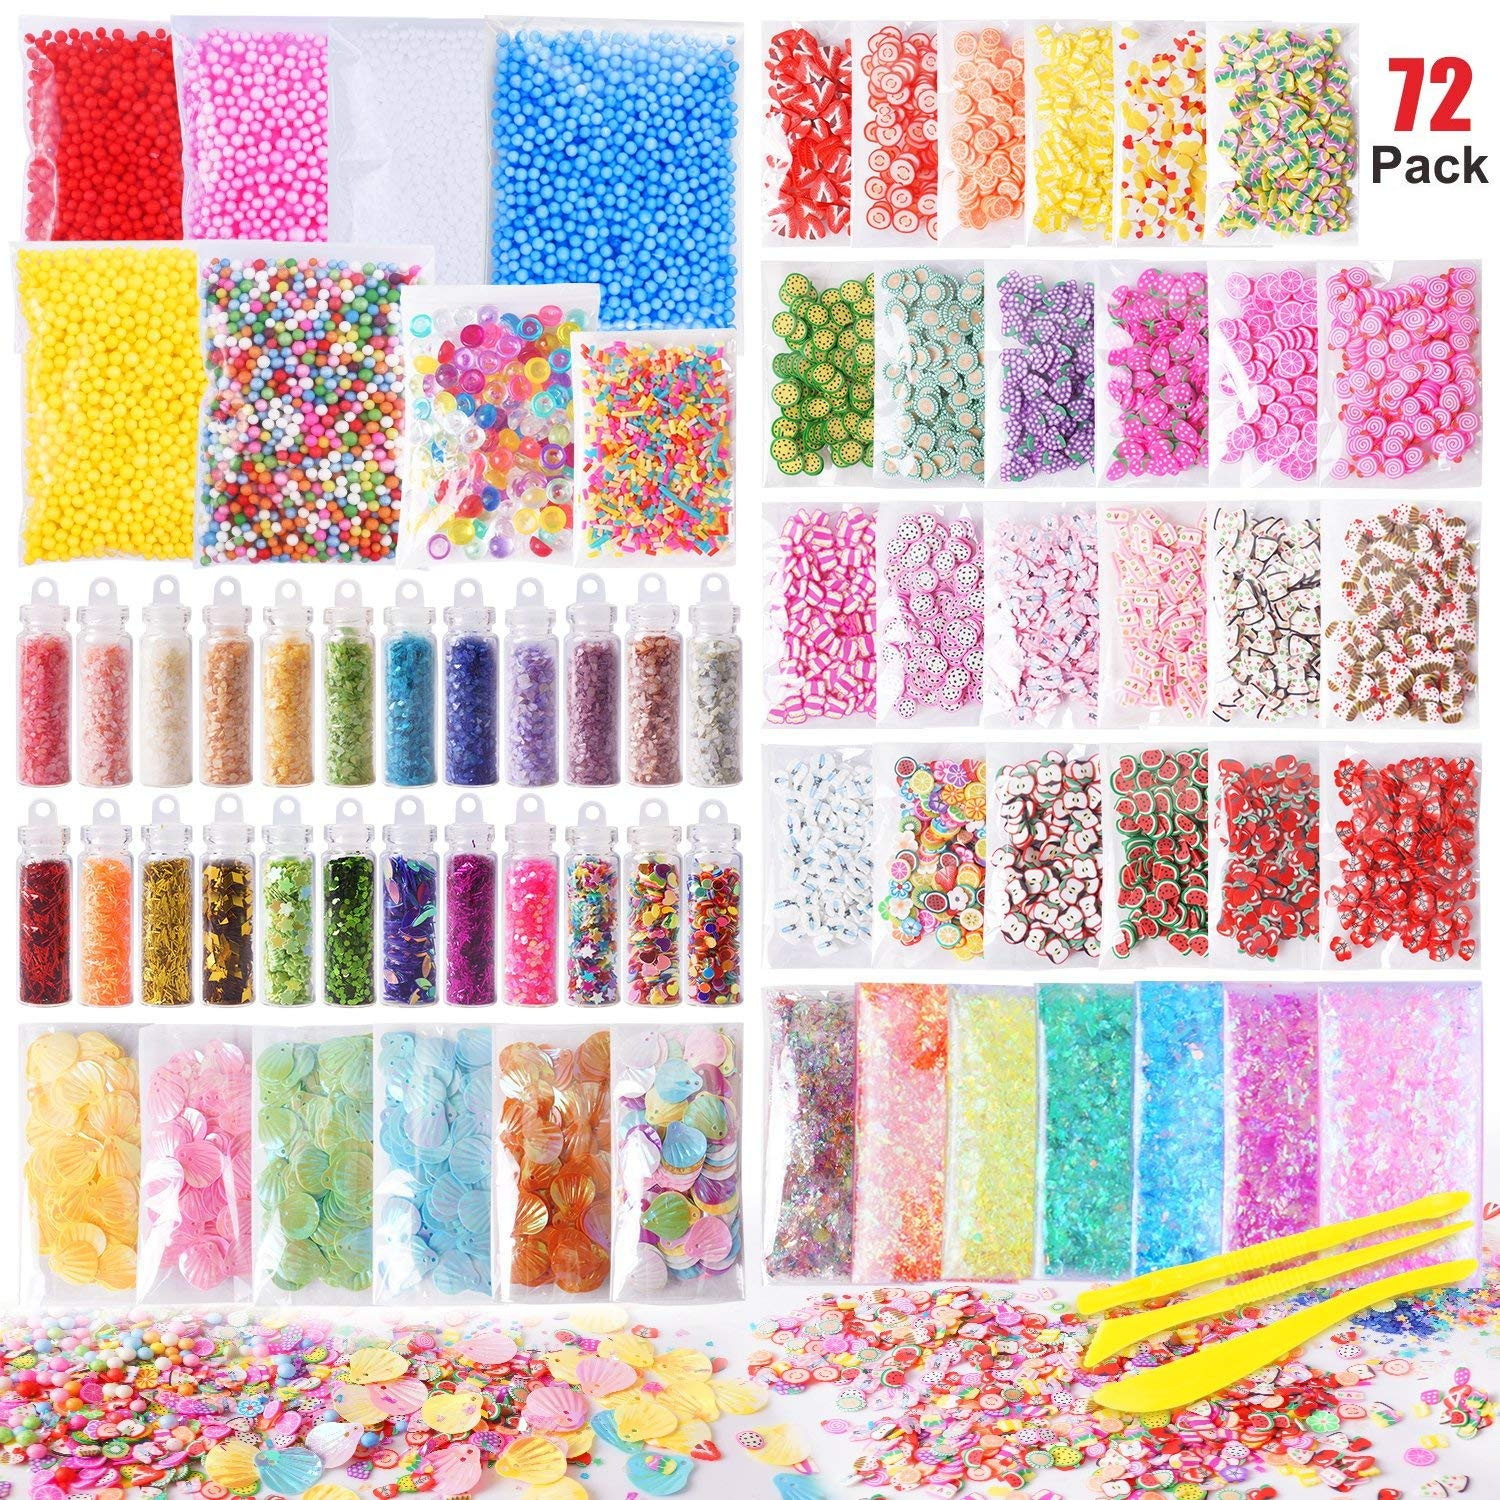 Slime Supplies Kit, 72 Pack Slime Stuff Charms Include Floam Balls, Glitter, Cake Flower Fruit Slices, Fishbowl Beads, Shell, Slime Accessories for DIY Slime Making, Slime Party Decoration Jeicy